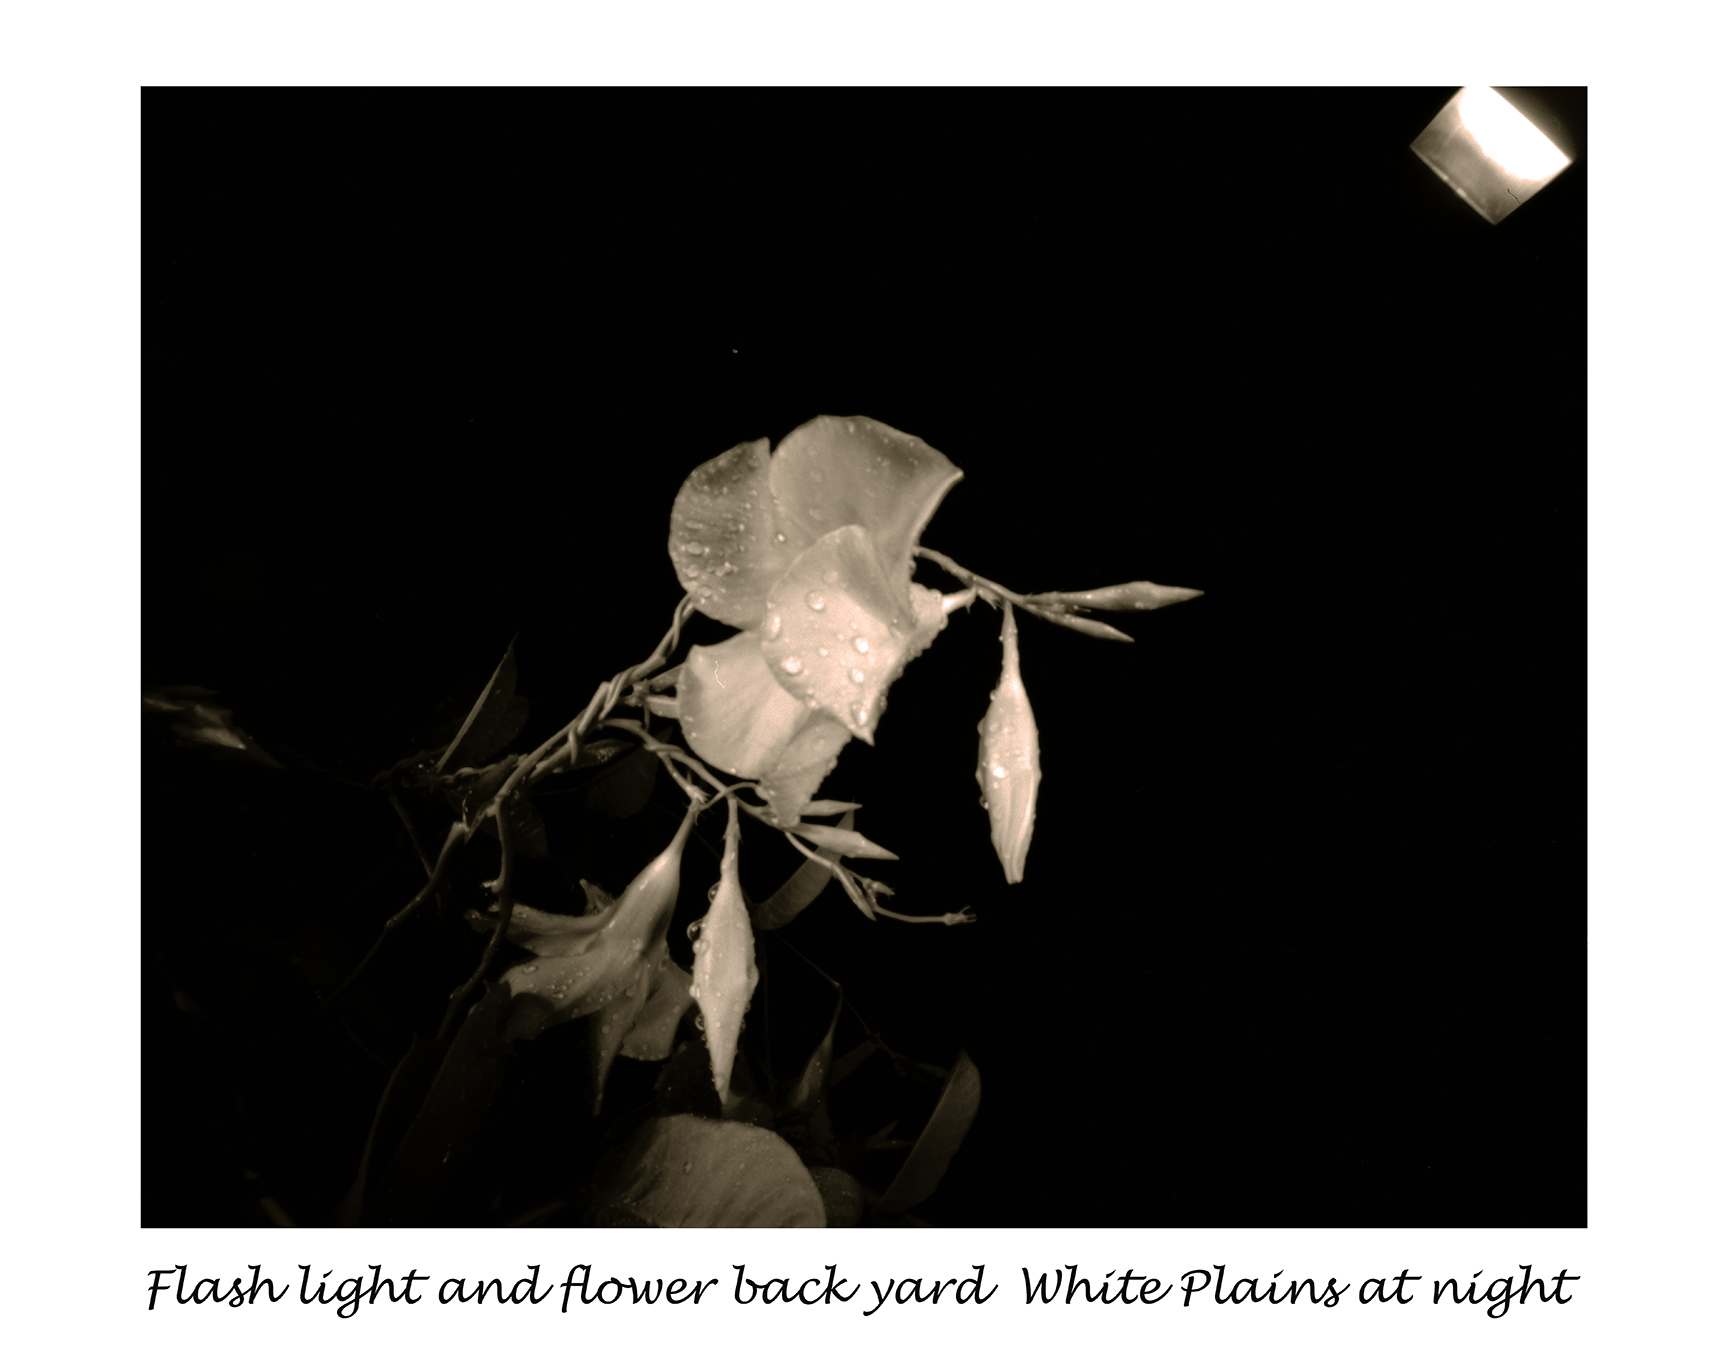 Flash light and flower